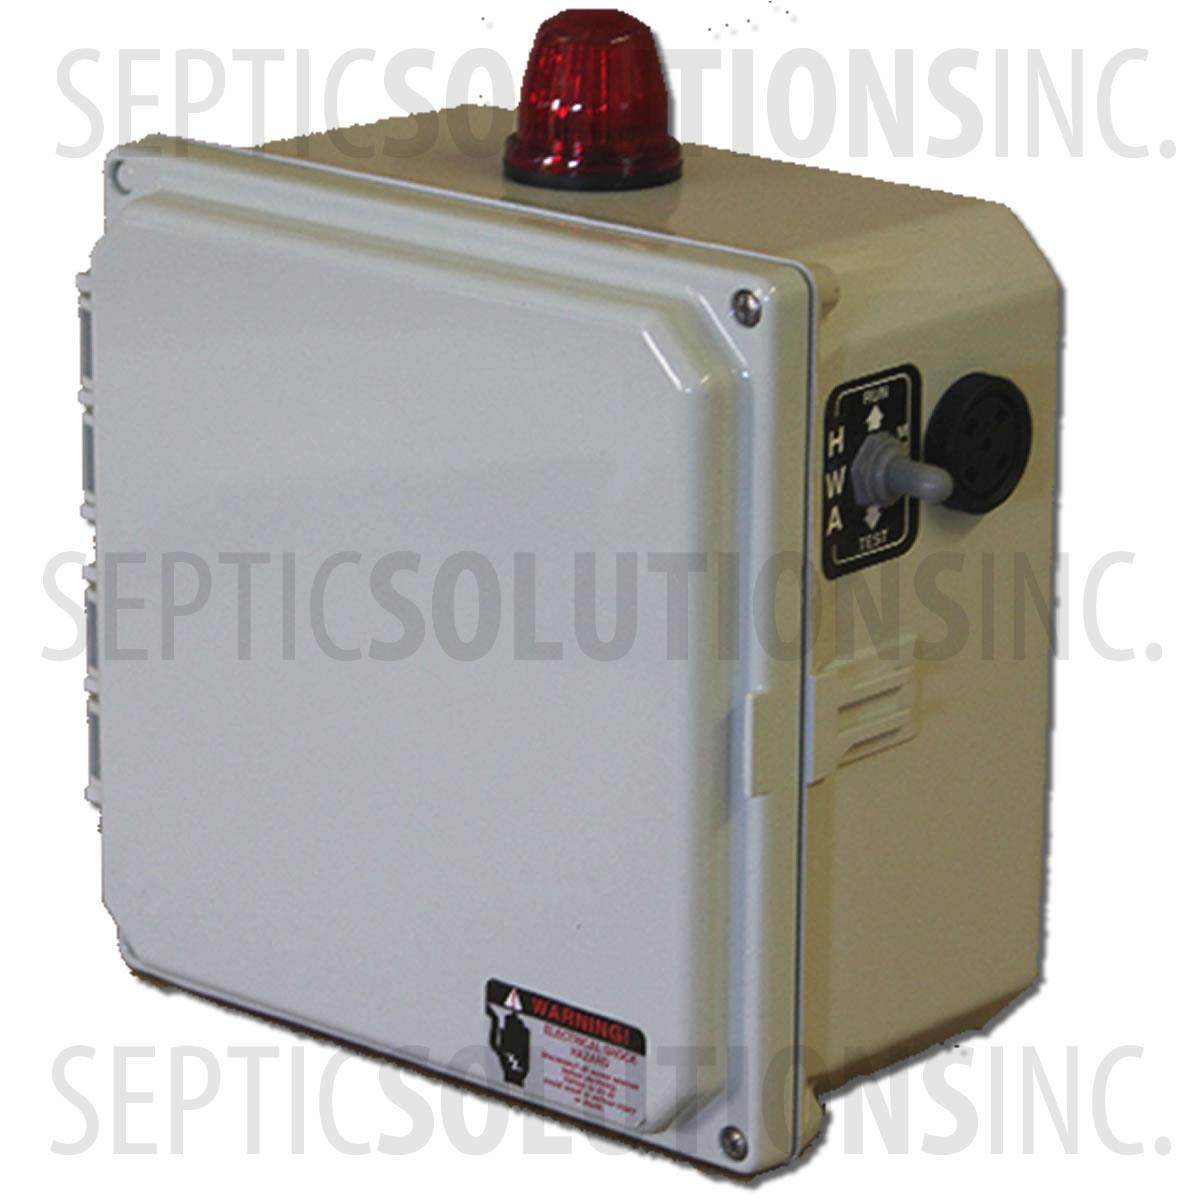 50B003_2?w=600 bio c aerobic septic system control panel fast & free shipping clearstream septic system wiring diagram at crackthecode.co